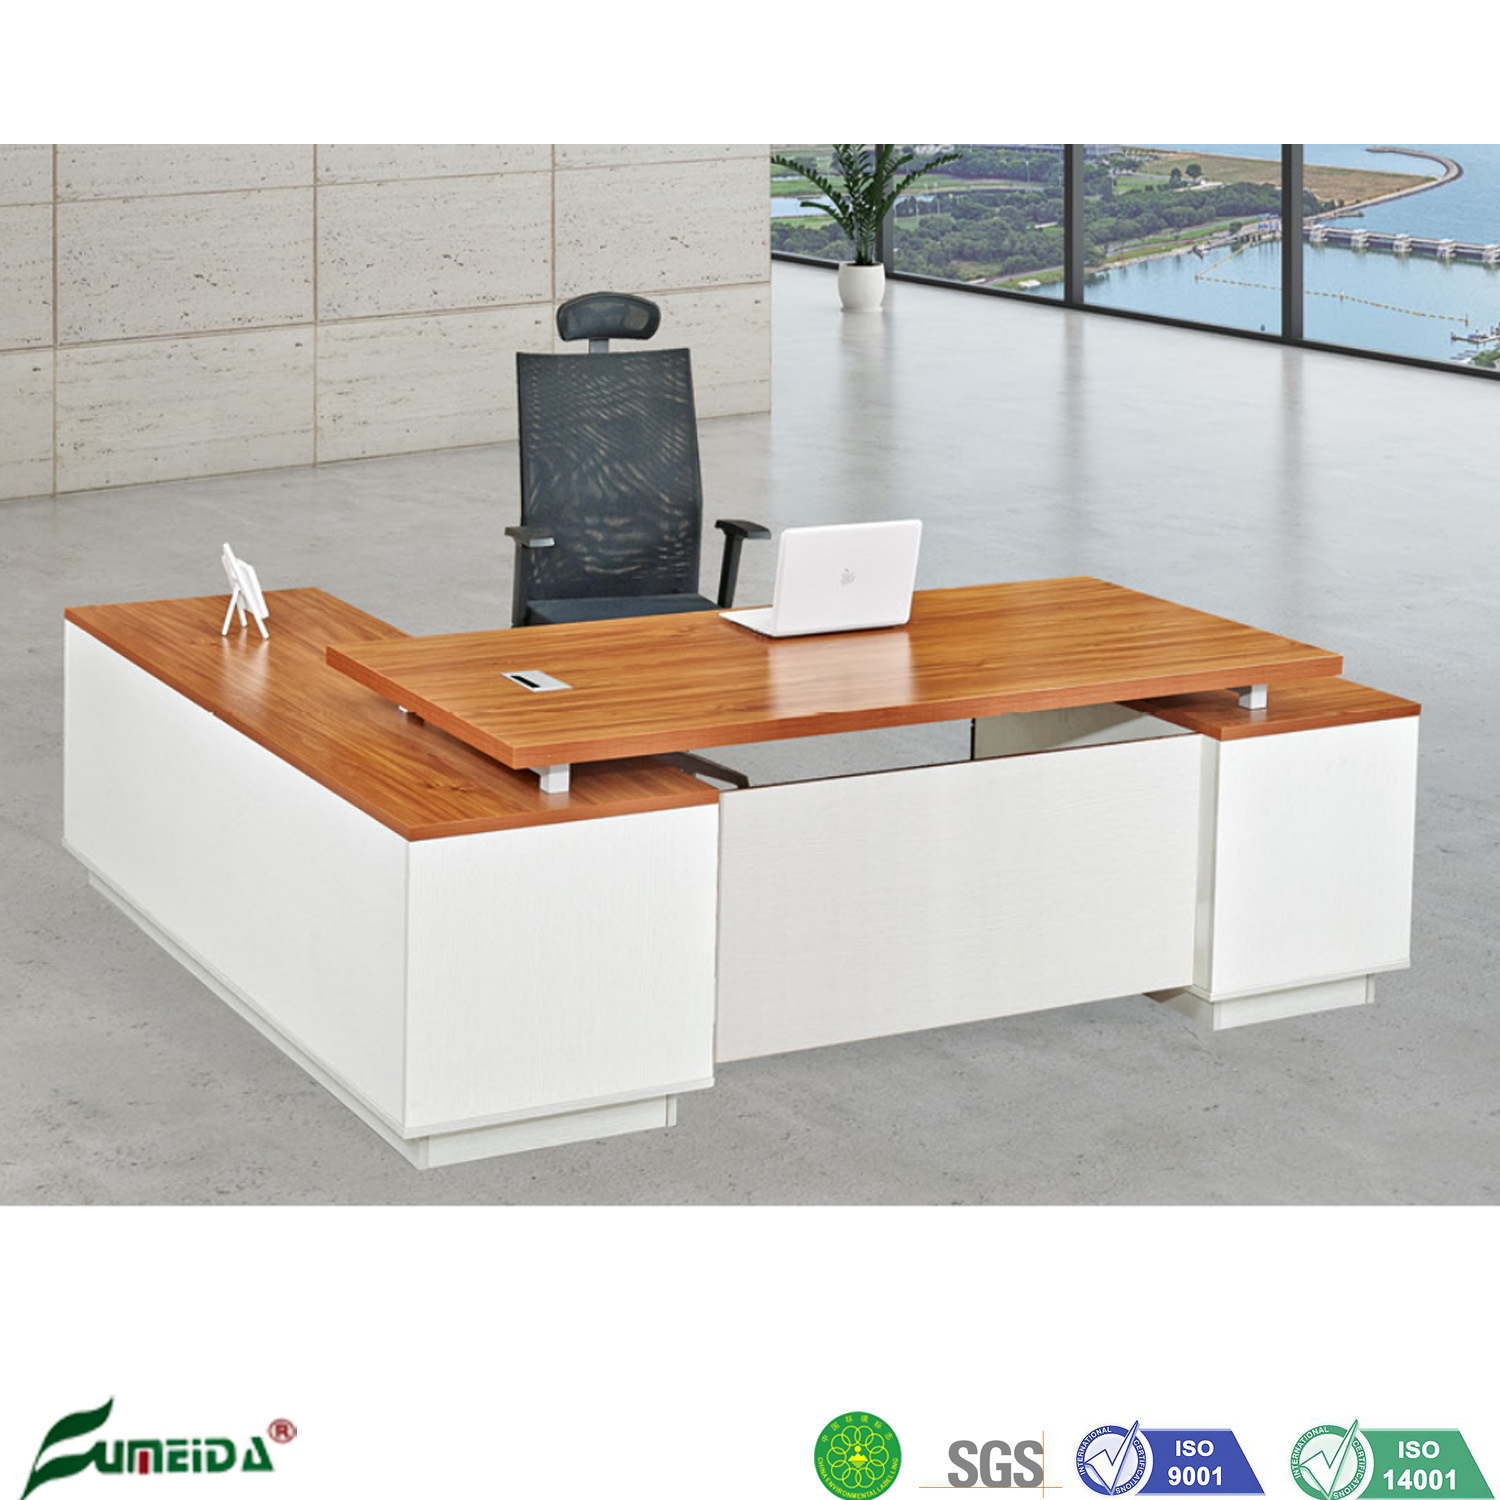 China Design Office Wooden Desk Furniture Work Executive Table For Saudi Arabia China Work Executive Table Office Wooden Desk